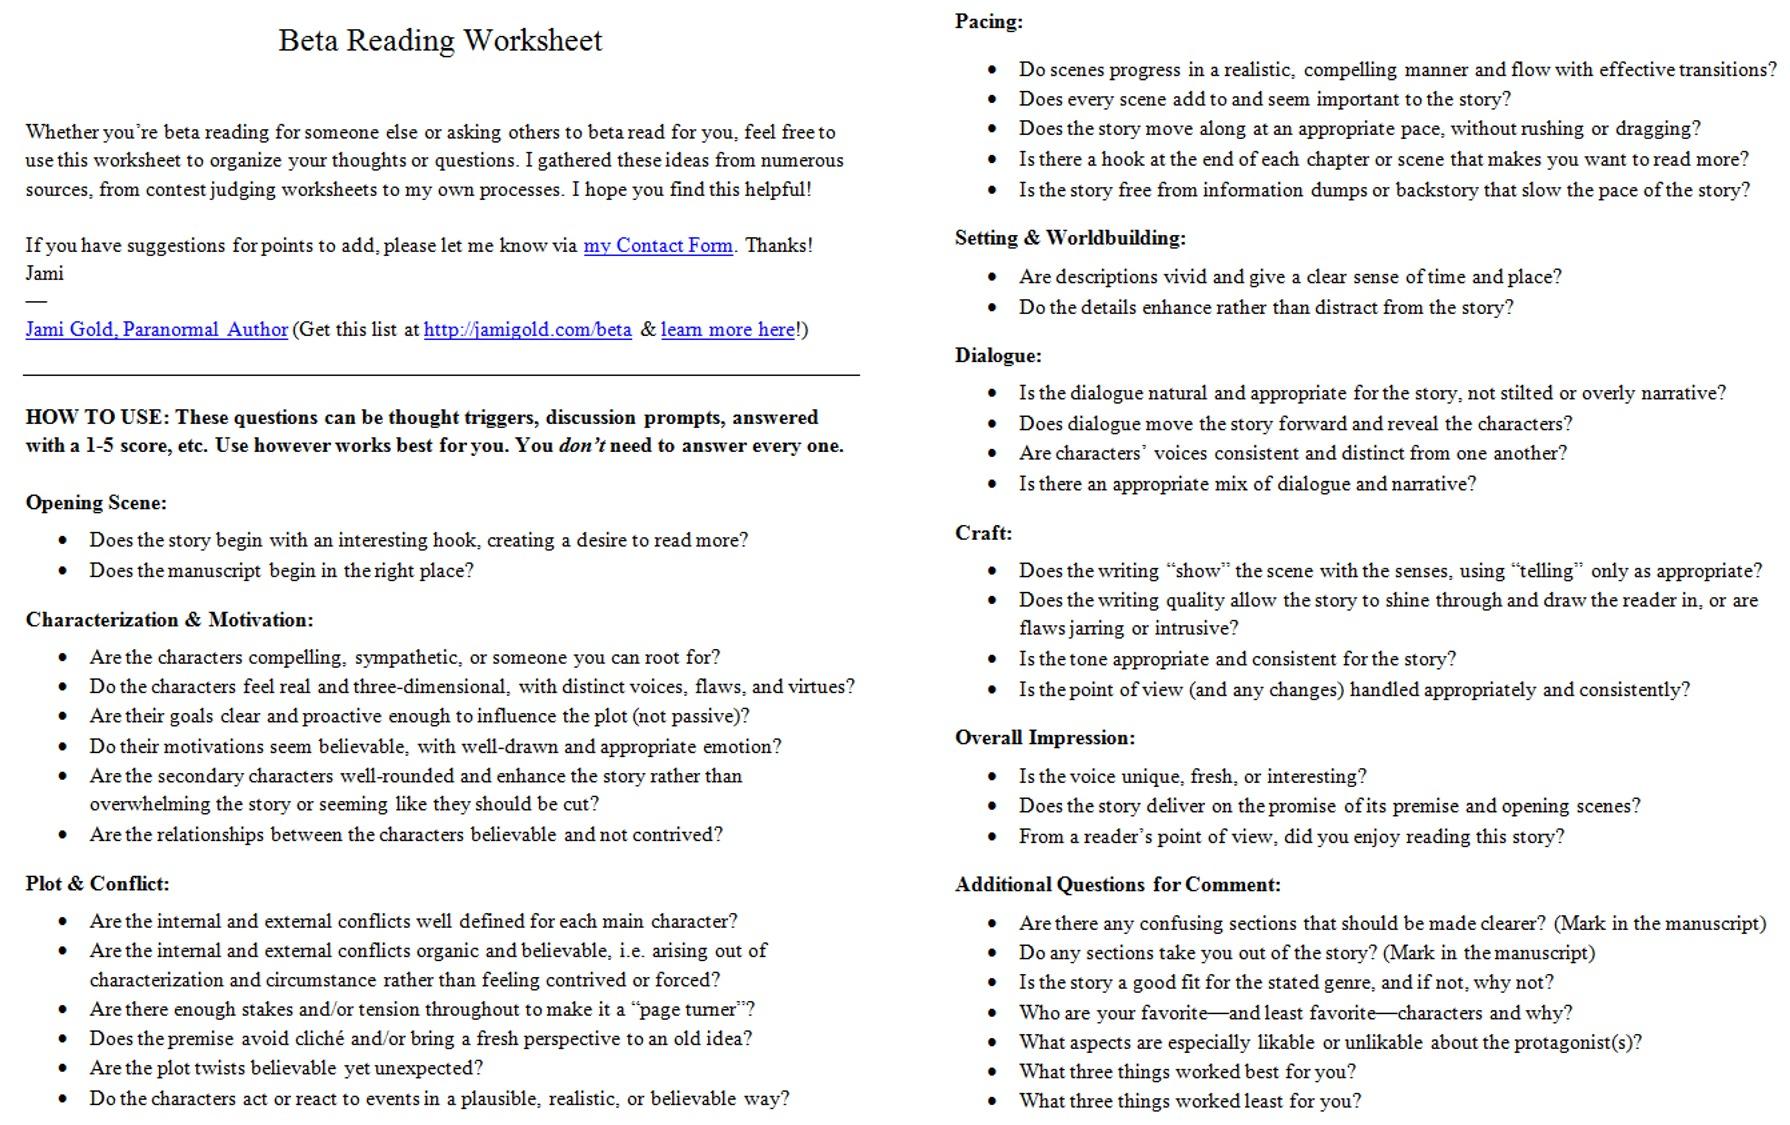 Proatmealus  Stunning Worksheets For Writers  Jami Gold Paranormal Author With Inspiring Screen Shot Of The Twopage Beta Reading Worksheet With Awesome Graphs Worksheet Also Long Vowel Worksheets Kindergarten In Addition Senses Worksheets And Tiger Rising Worksheets As Well As Make Your Own Cursive Handwriting Worksheets Additionally Measure In Inches Worksheet From Jamigoldcom With Proatmealus  Inspiring Worksheets For Writers  Jami Gold Paranormal Author With Awesome Screen Shot Of The Twopage Beta Reading Worksheet And Stunning Graphs Worksheet Also Long Vowel Worksheets Kindergarten In Addition Senses Worksheets From Jamigoldcom